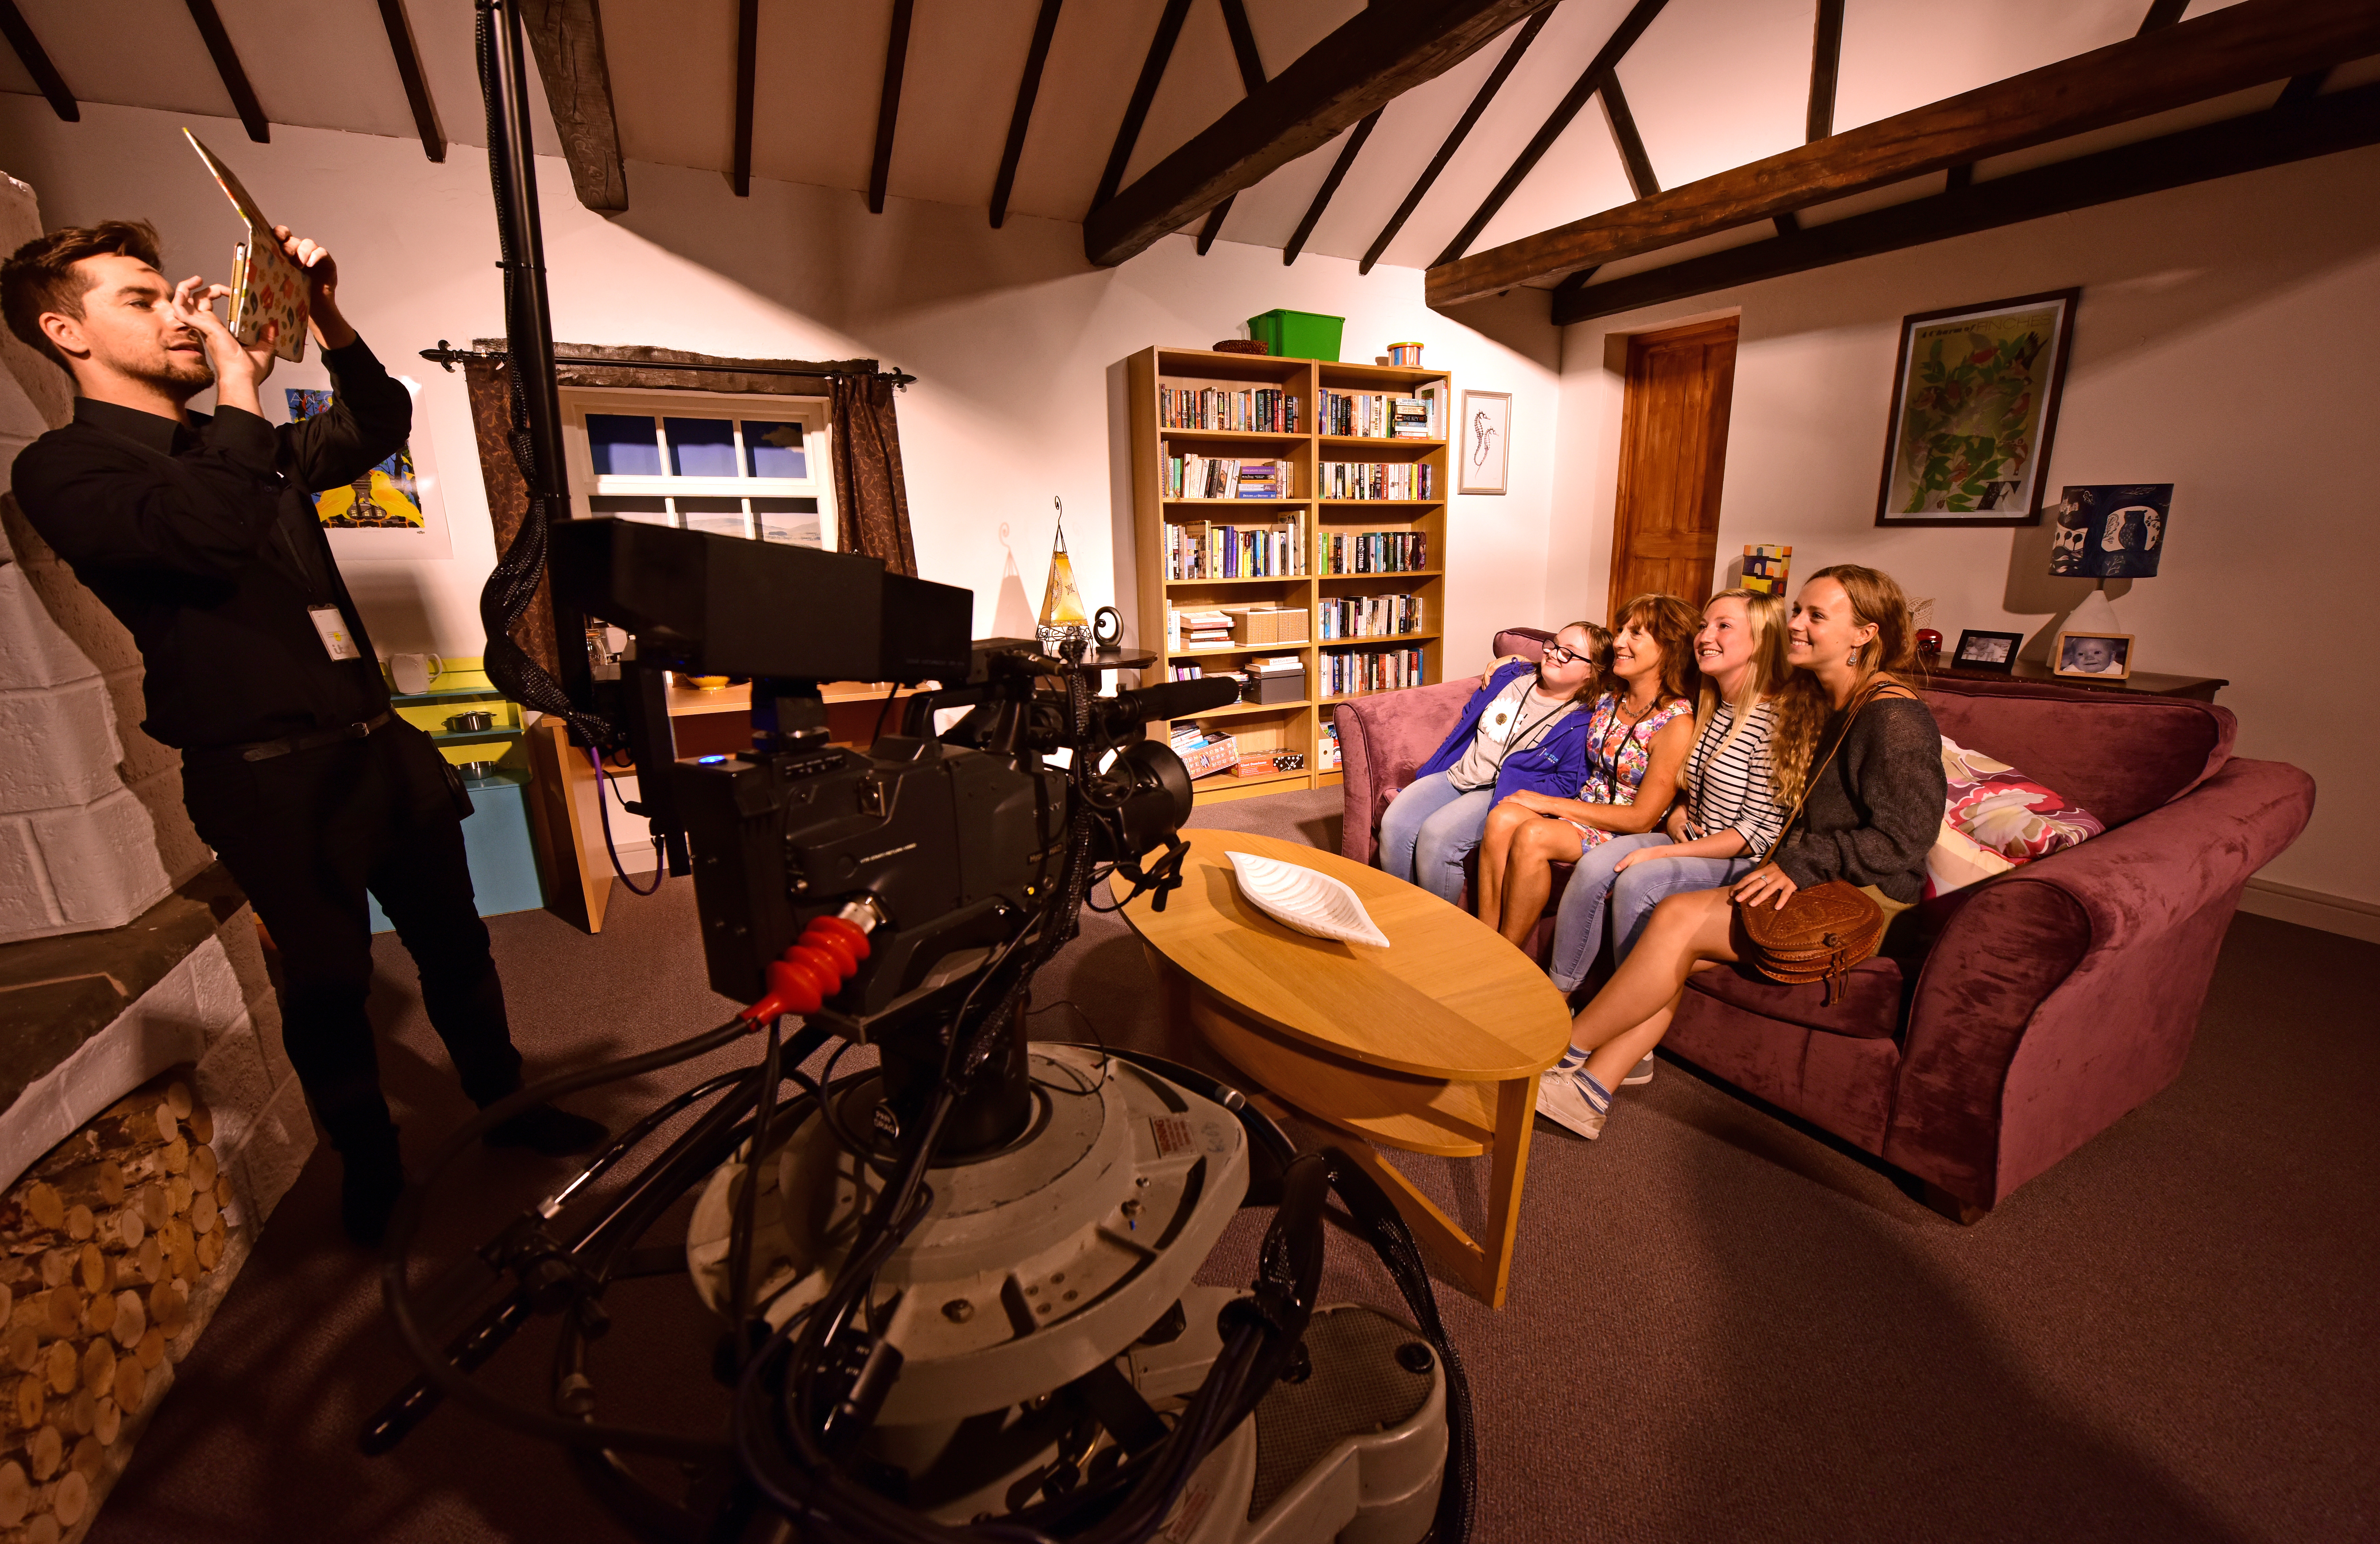 Our day trips from Warrington include the Emmerdale Studio Experience.